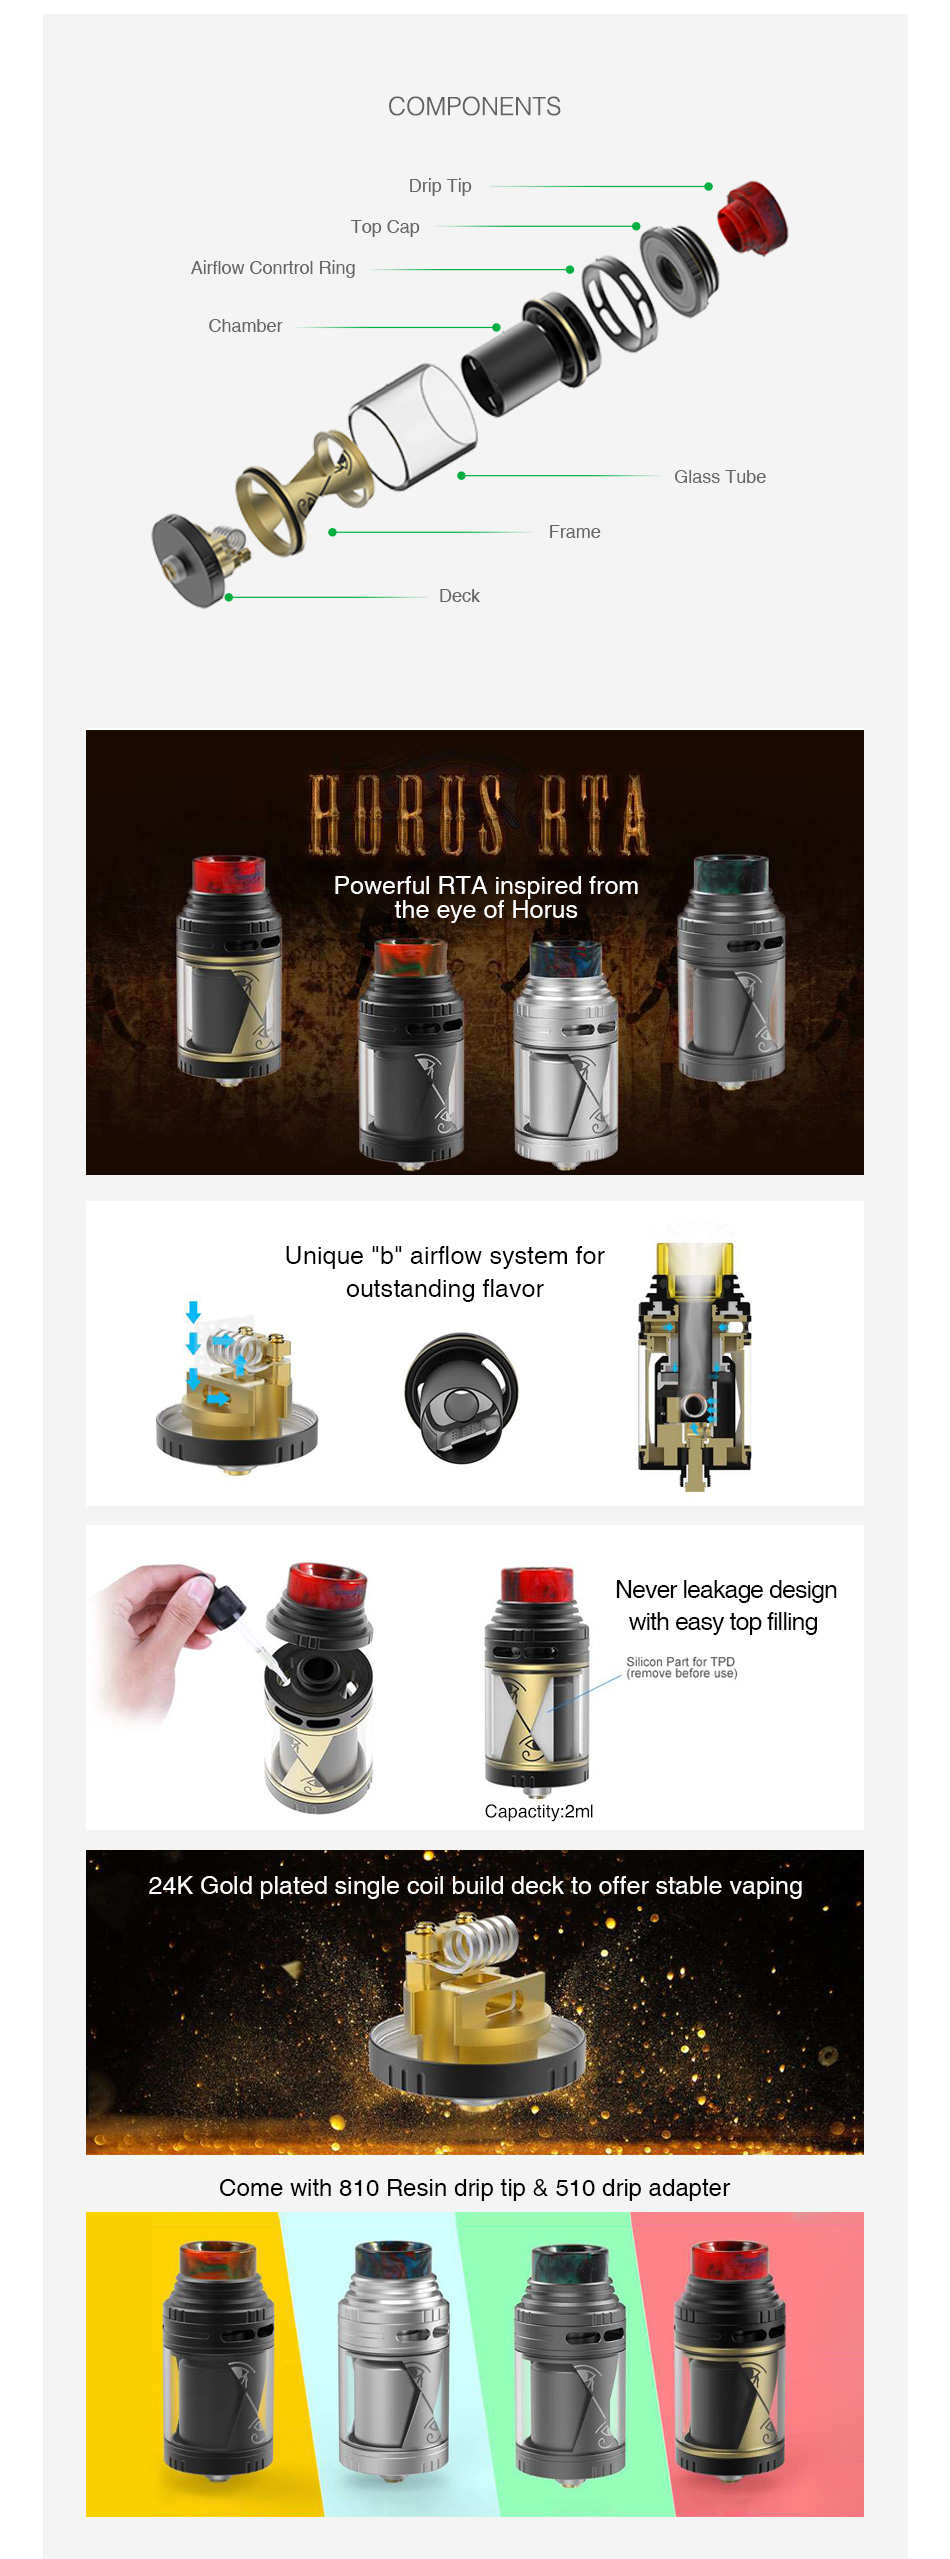 https://d1844rainhf76j.cloudfront.net/goods_desc/Vapefly-Horus-RTA-4ml_06_e0f323.jpg